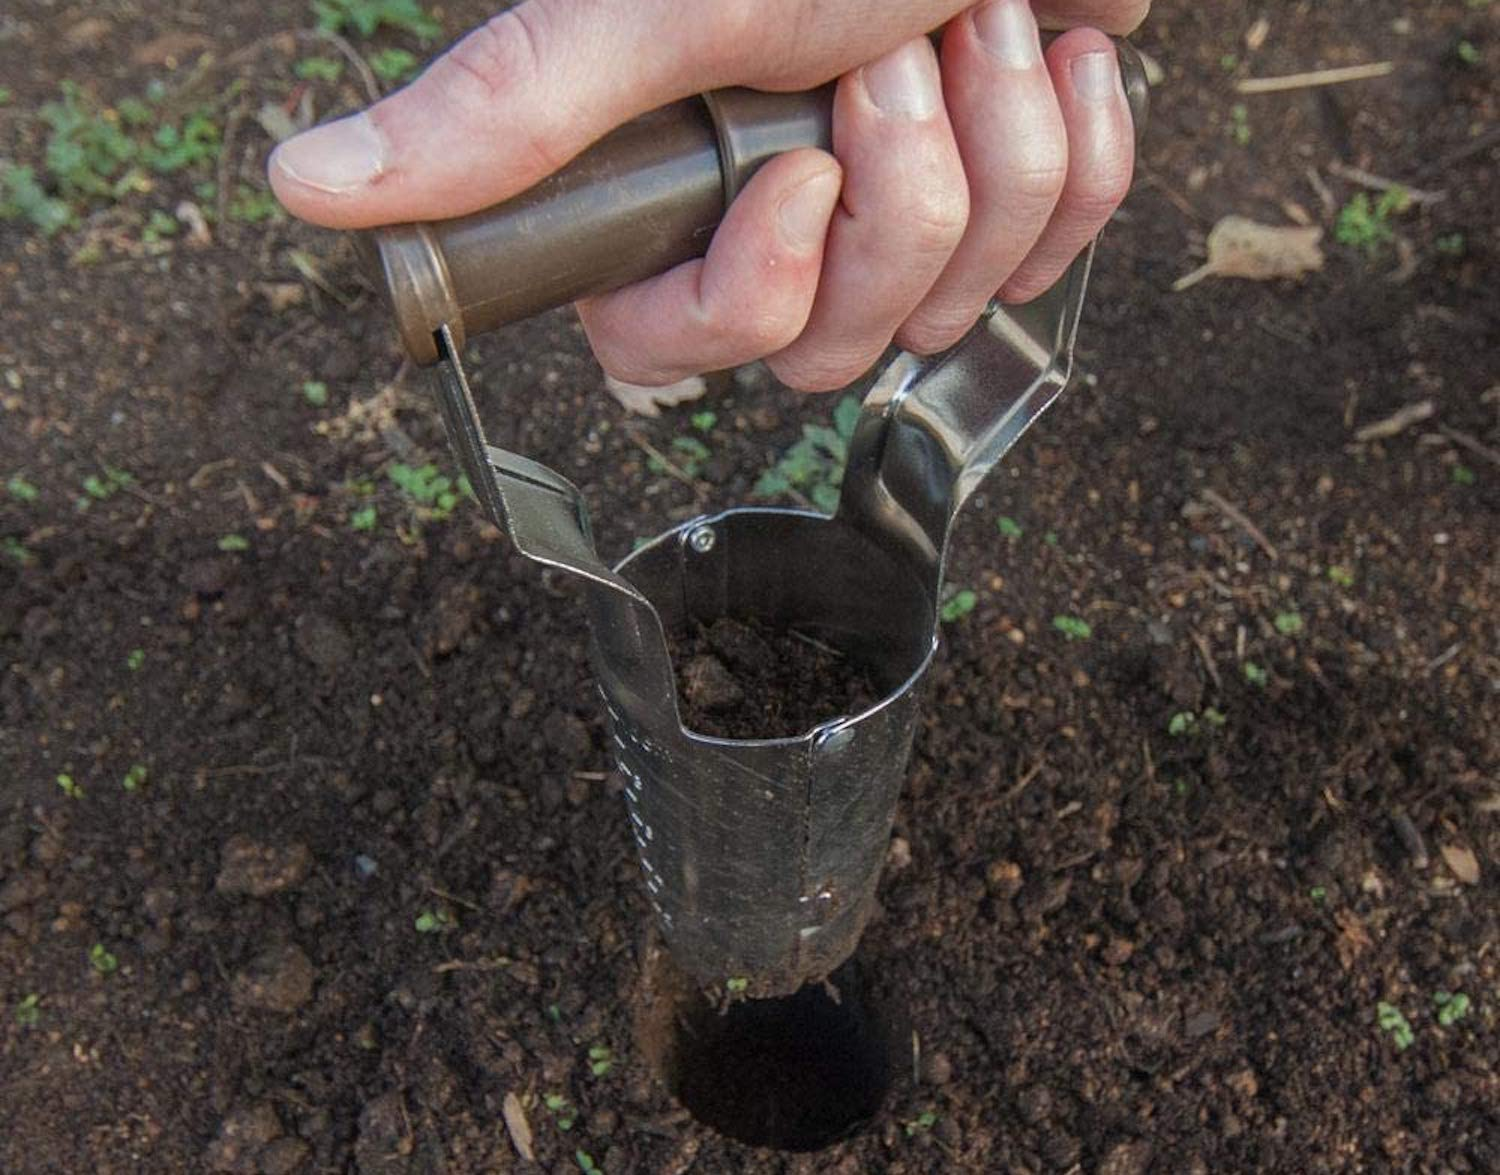 A hand holding a metal bulb planter above a hole in the garden dirt